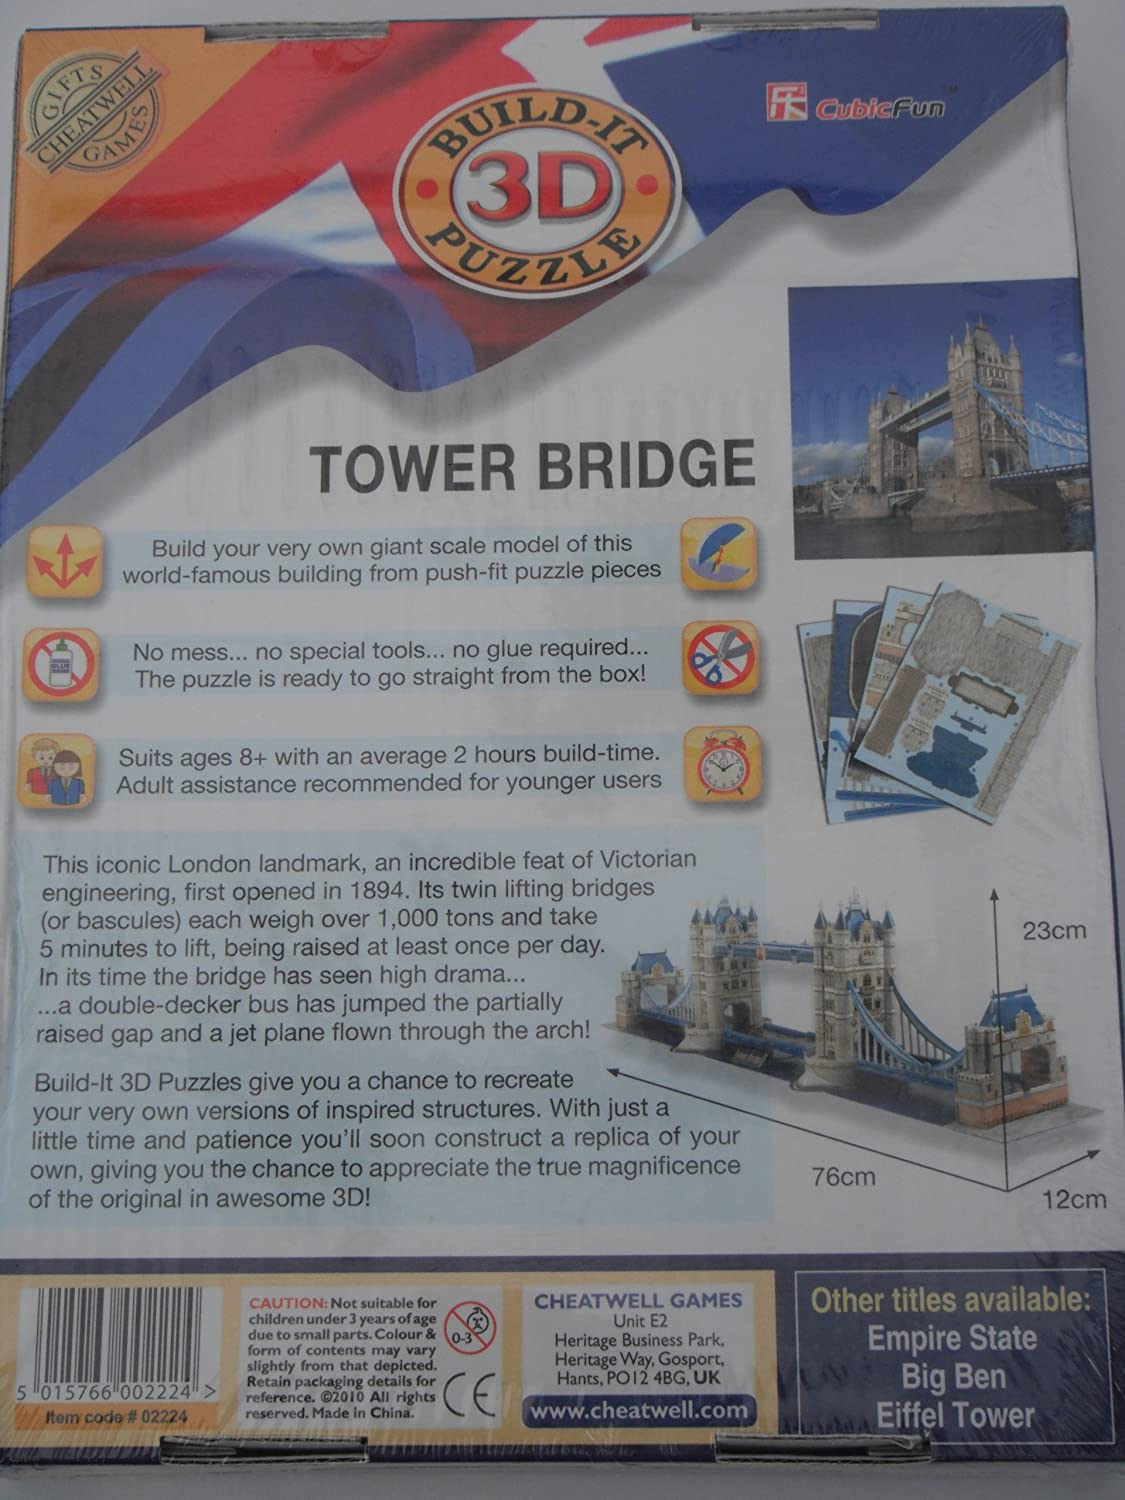 Amazon.com: LONDON TOWER BRIDGE 120 PIECES BUILD-IT 3D PUZZLE (2010) by Cubic Fun Series: Toys & Games